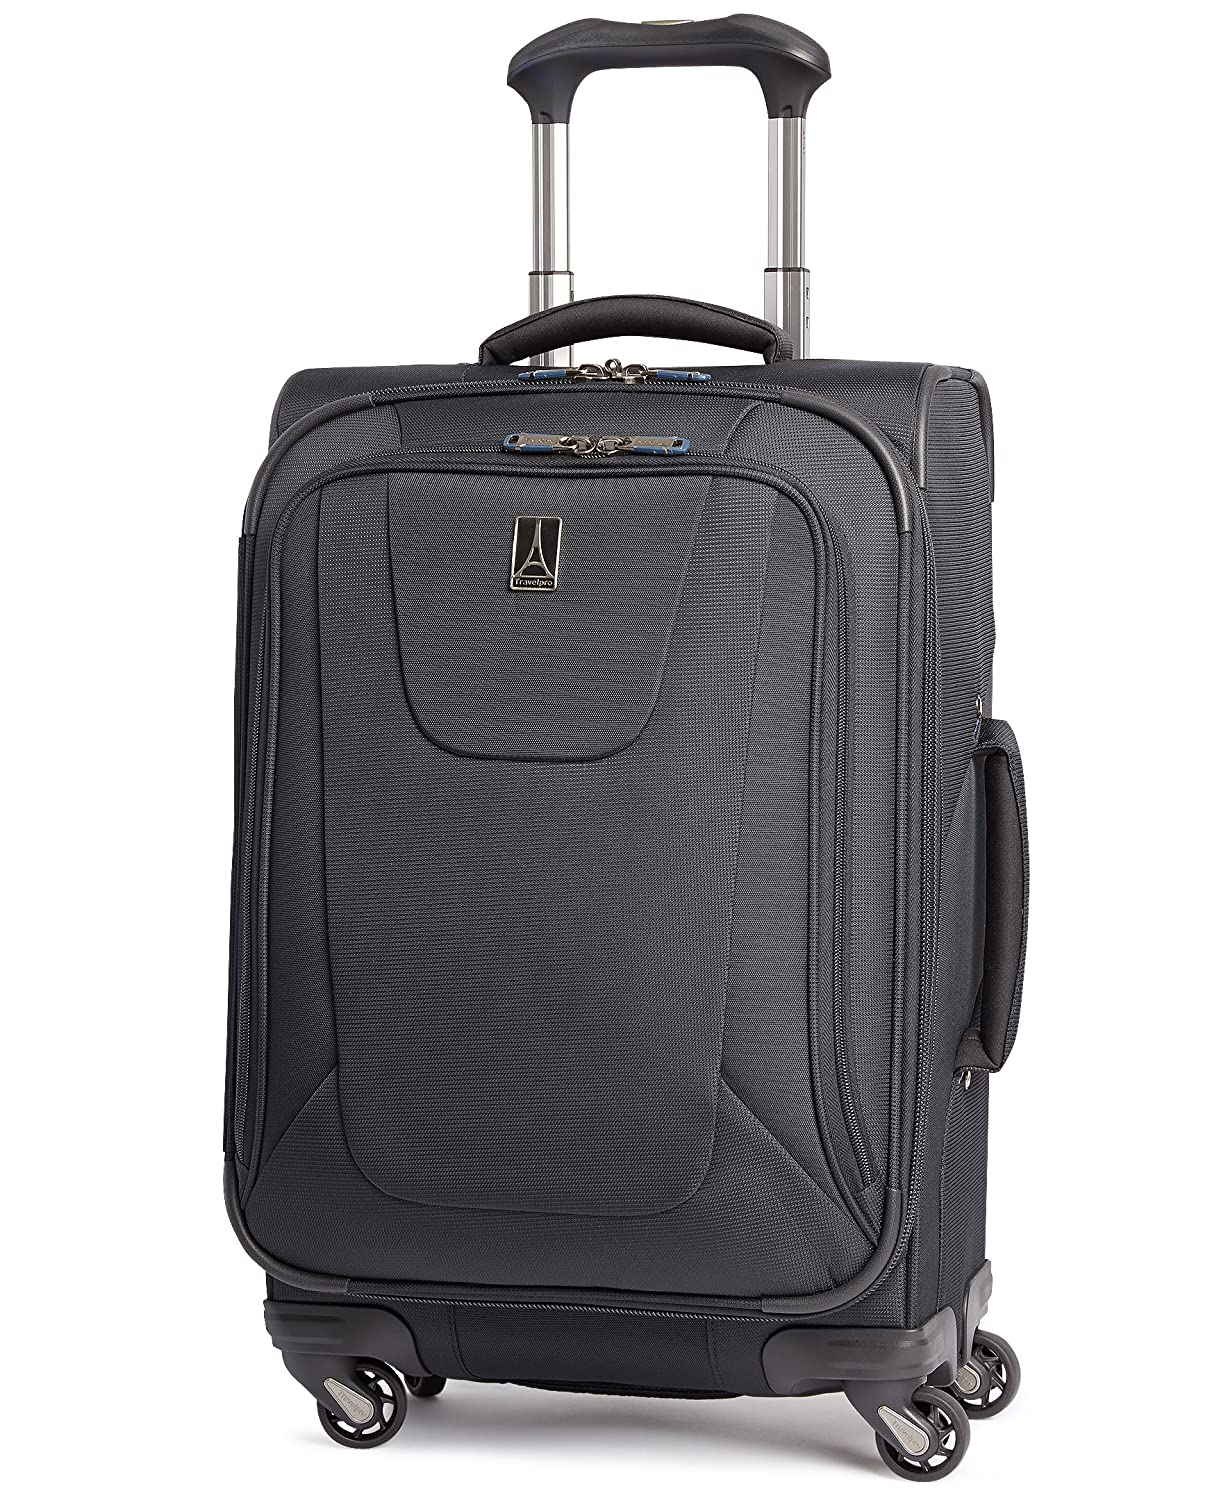 Search for the Best Lightweight Luggage for Travel Trips For